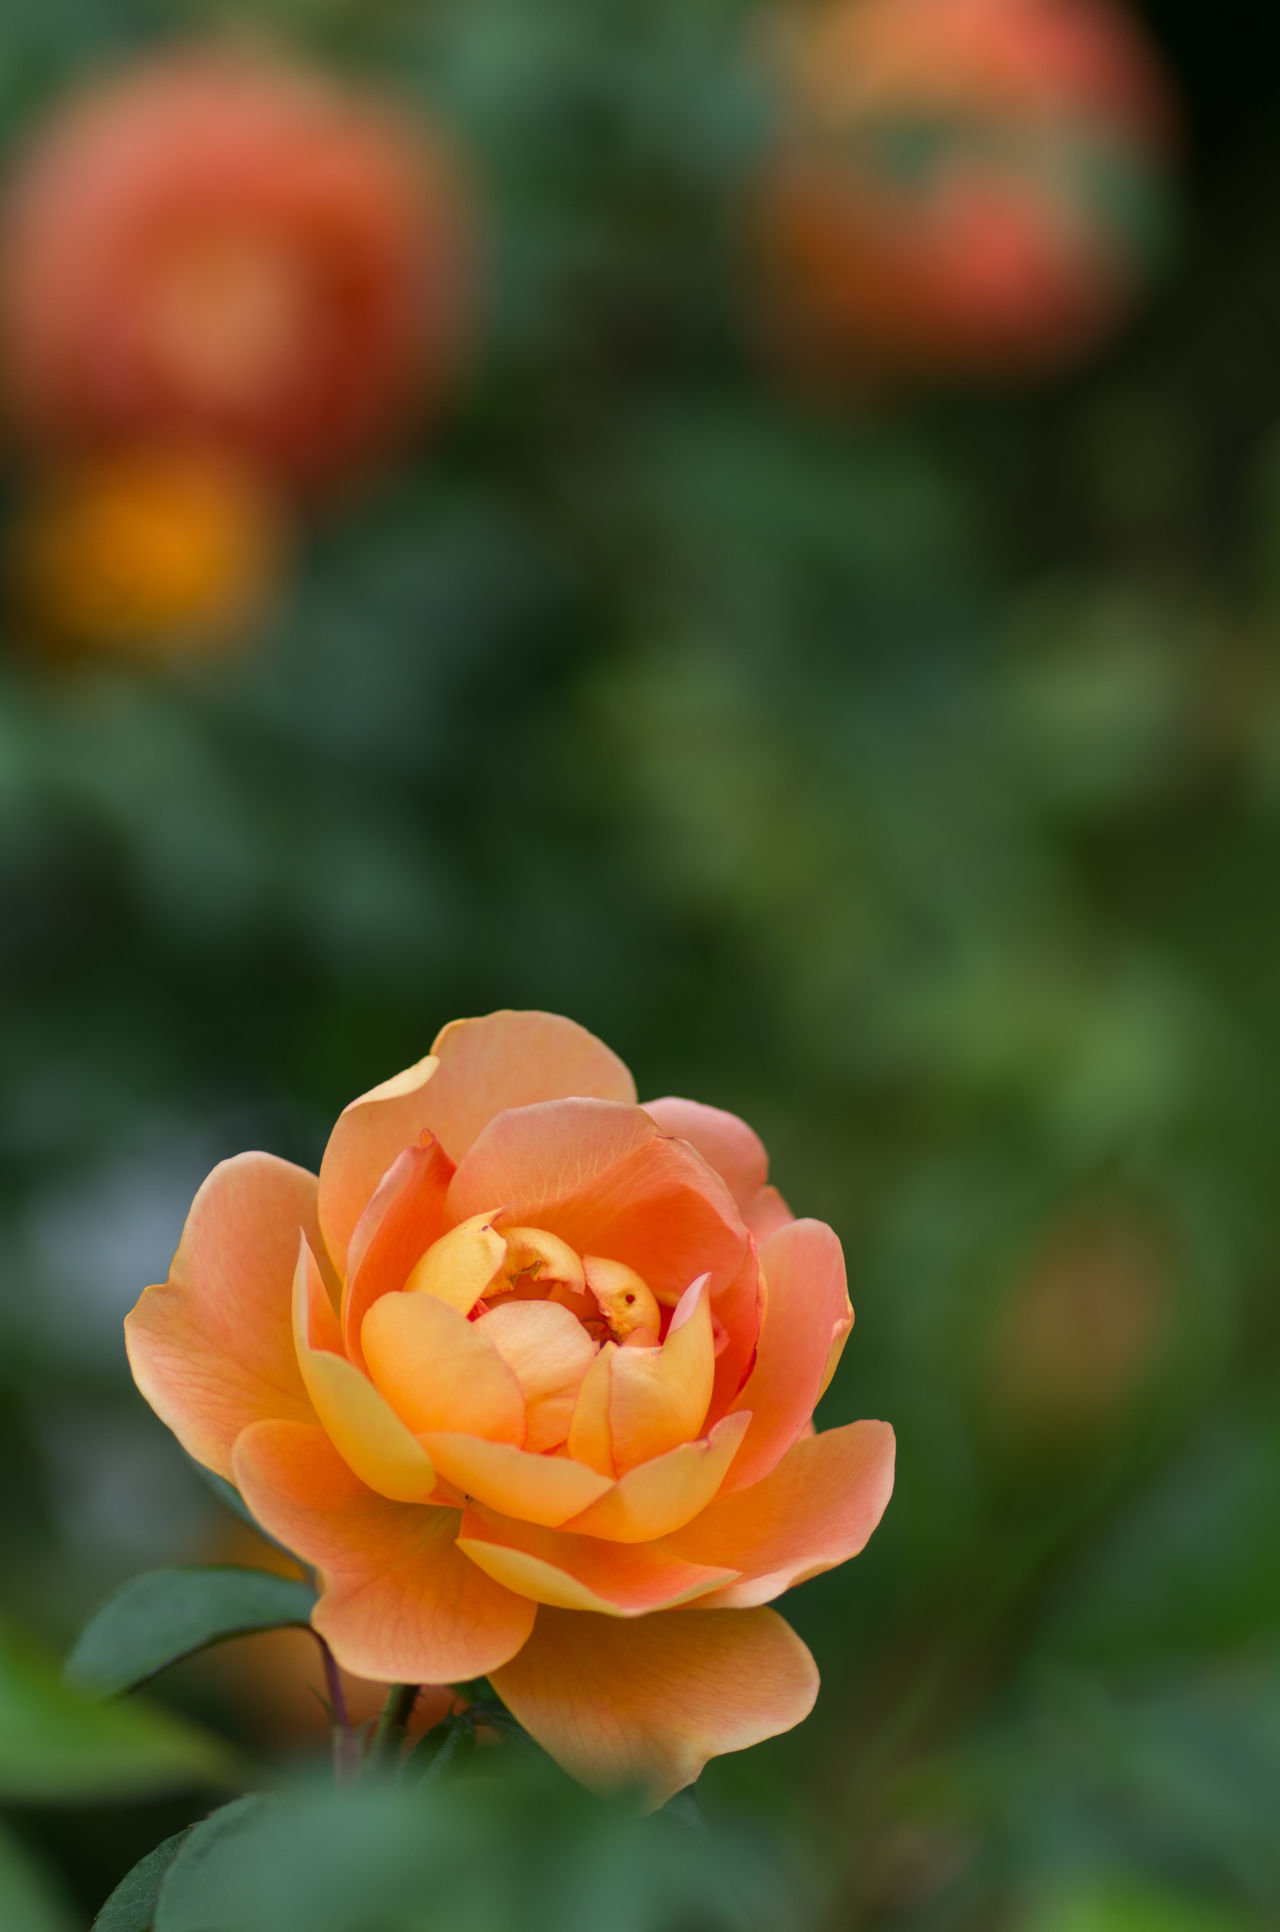 Beauty In Nature Blooming Close-up Day Flower Flower Head Focus On Foreground Fragility Freshness Growth Nature No People Orange Color Outdoors Petal Plant Rose - Flower